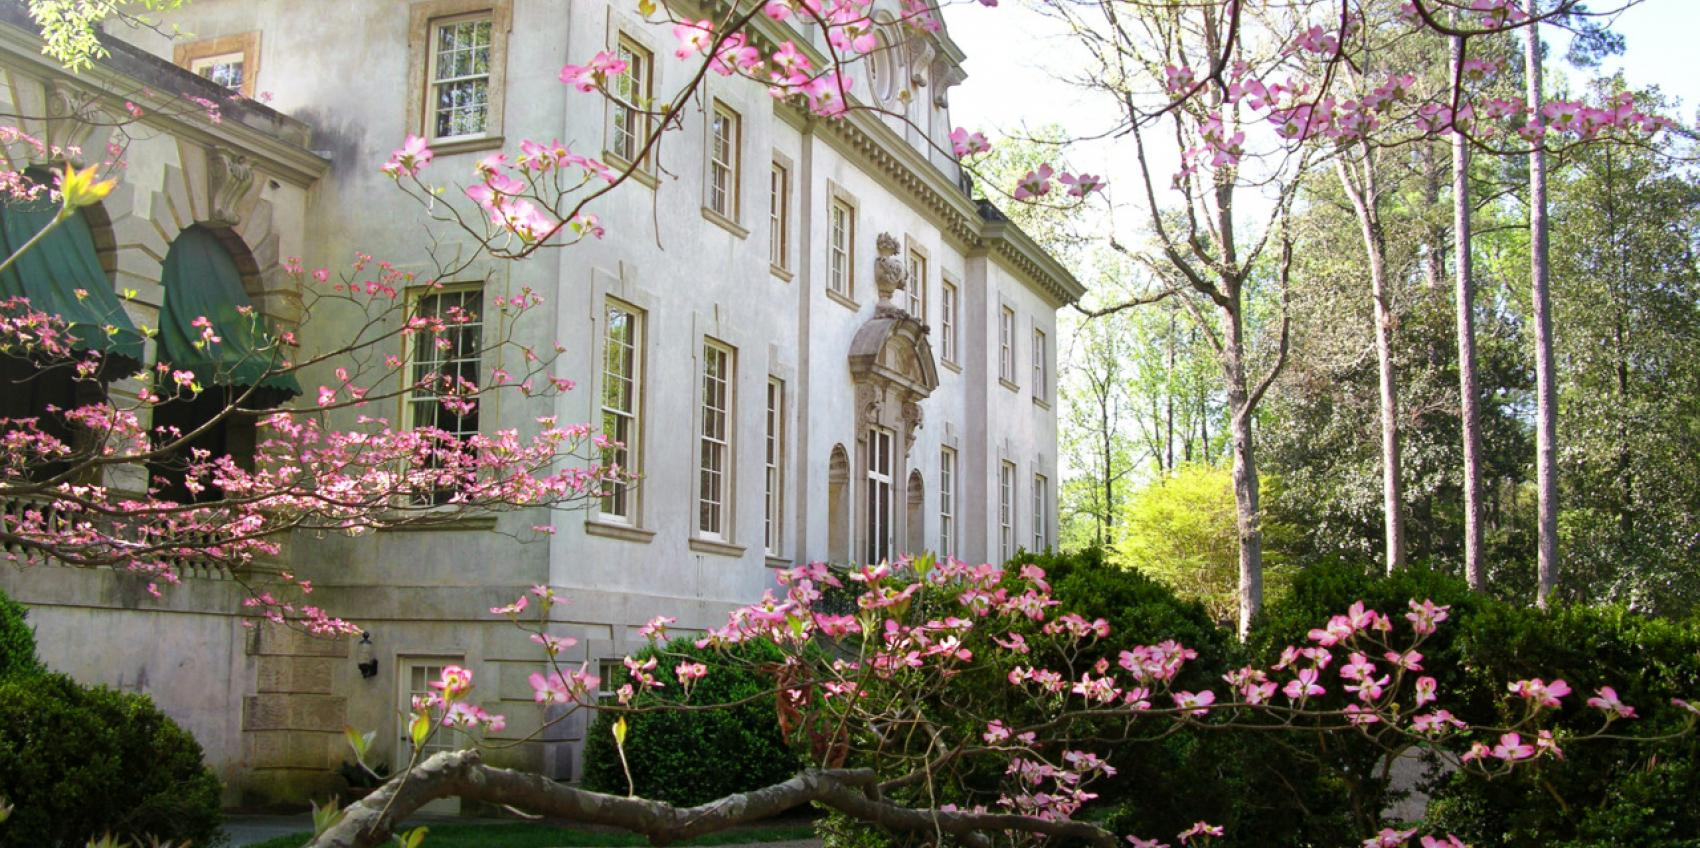 Exceptional The Atlanta History Center Is Home To 33 Acres Of Beautiful Gardens,  Including The Mary Howard Gilbert Memorial Quarry Garden, The Smith Family  Farm, ...